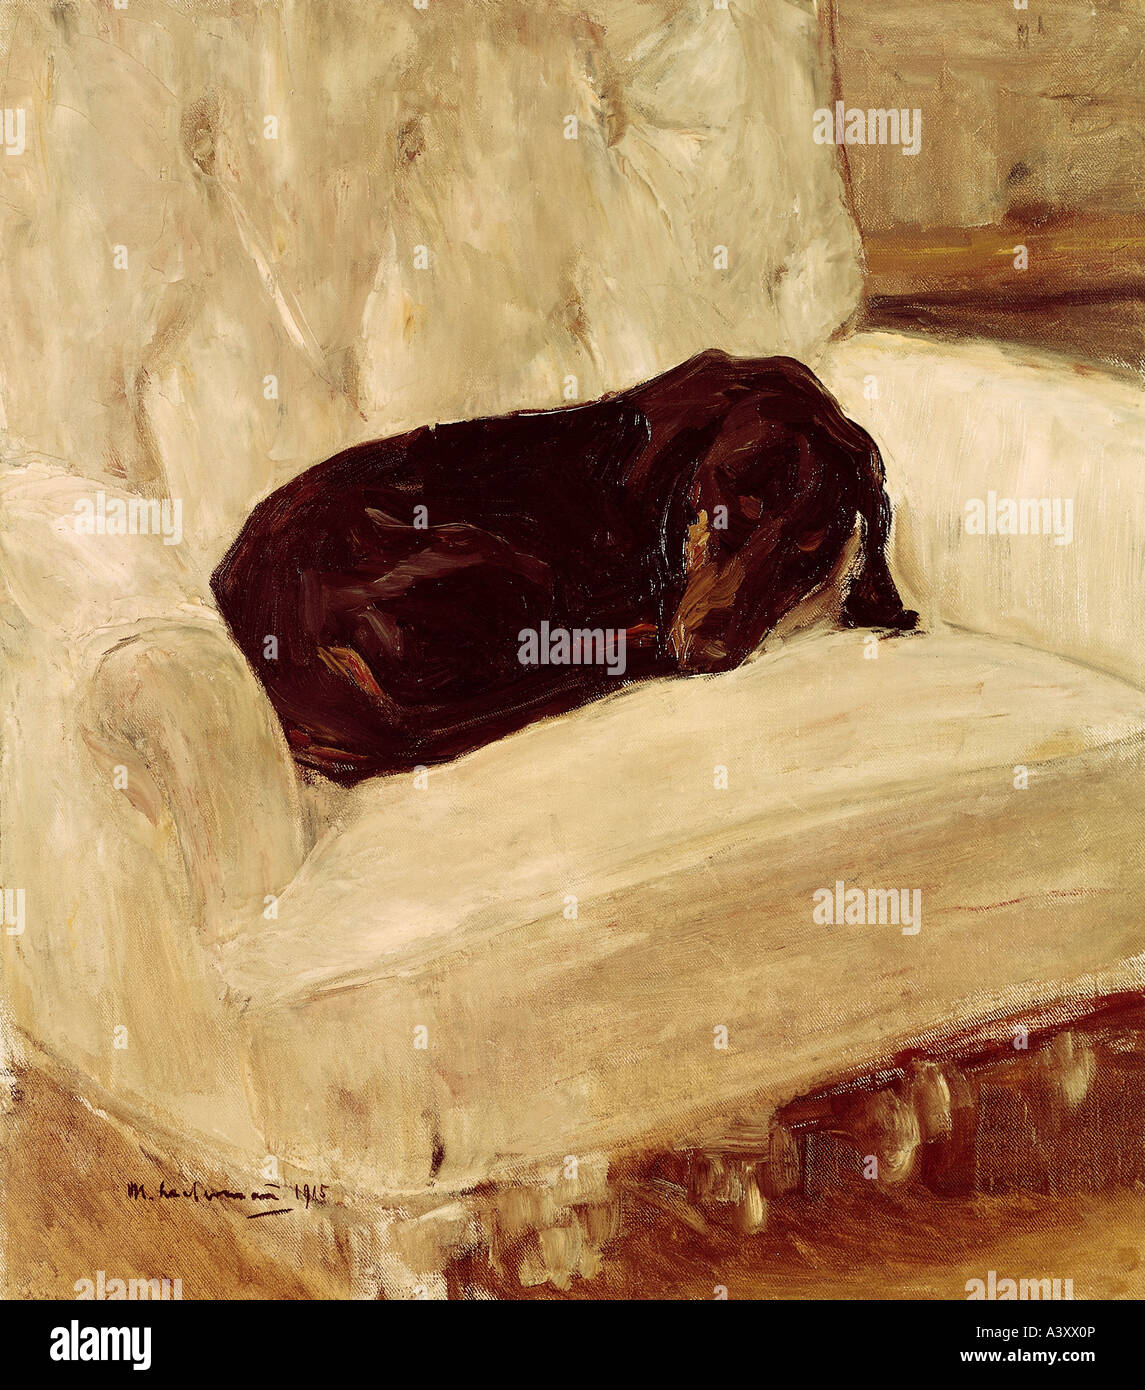 'Fine Arts, Liebermann, Max, (1847 - 1935), peinture, chlafender', 'SDackel teckel ('sleeping'), Photo Stock